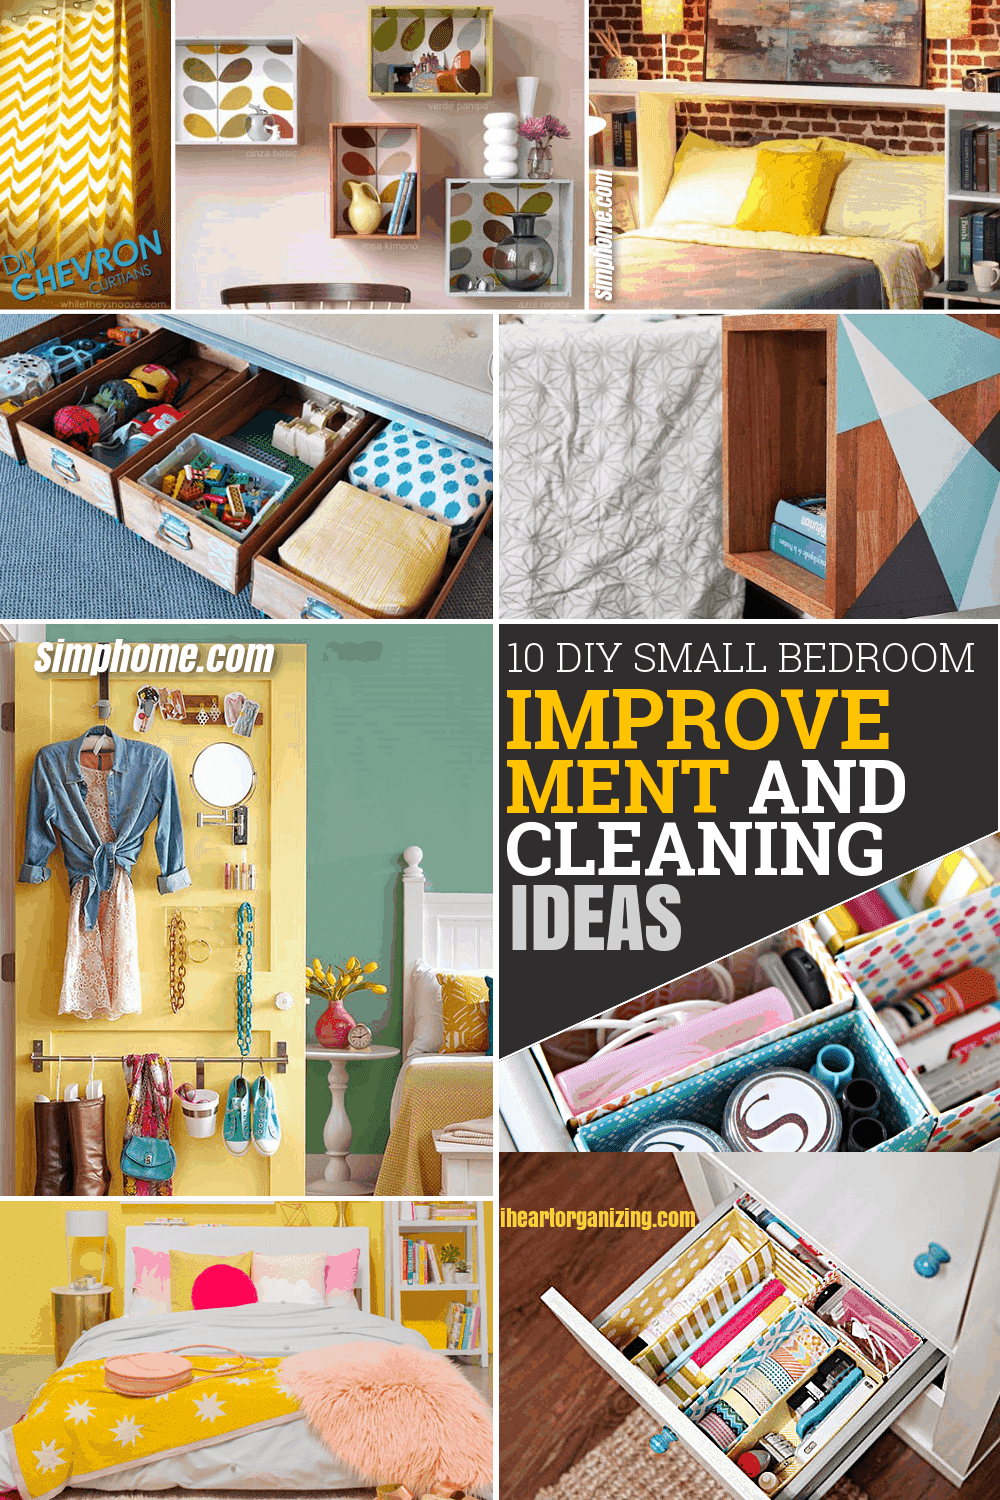 10 DIY Small Bedroom Improvement and Cleaning Ideas via Simphome Pinterest featured image 1